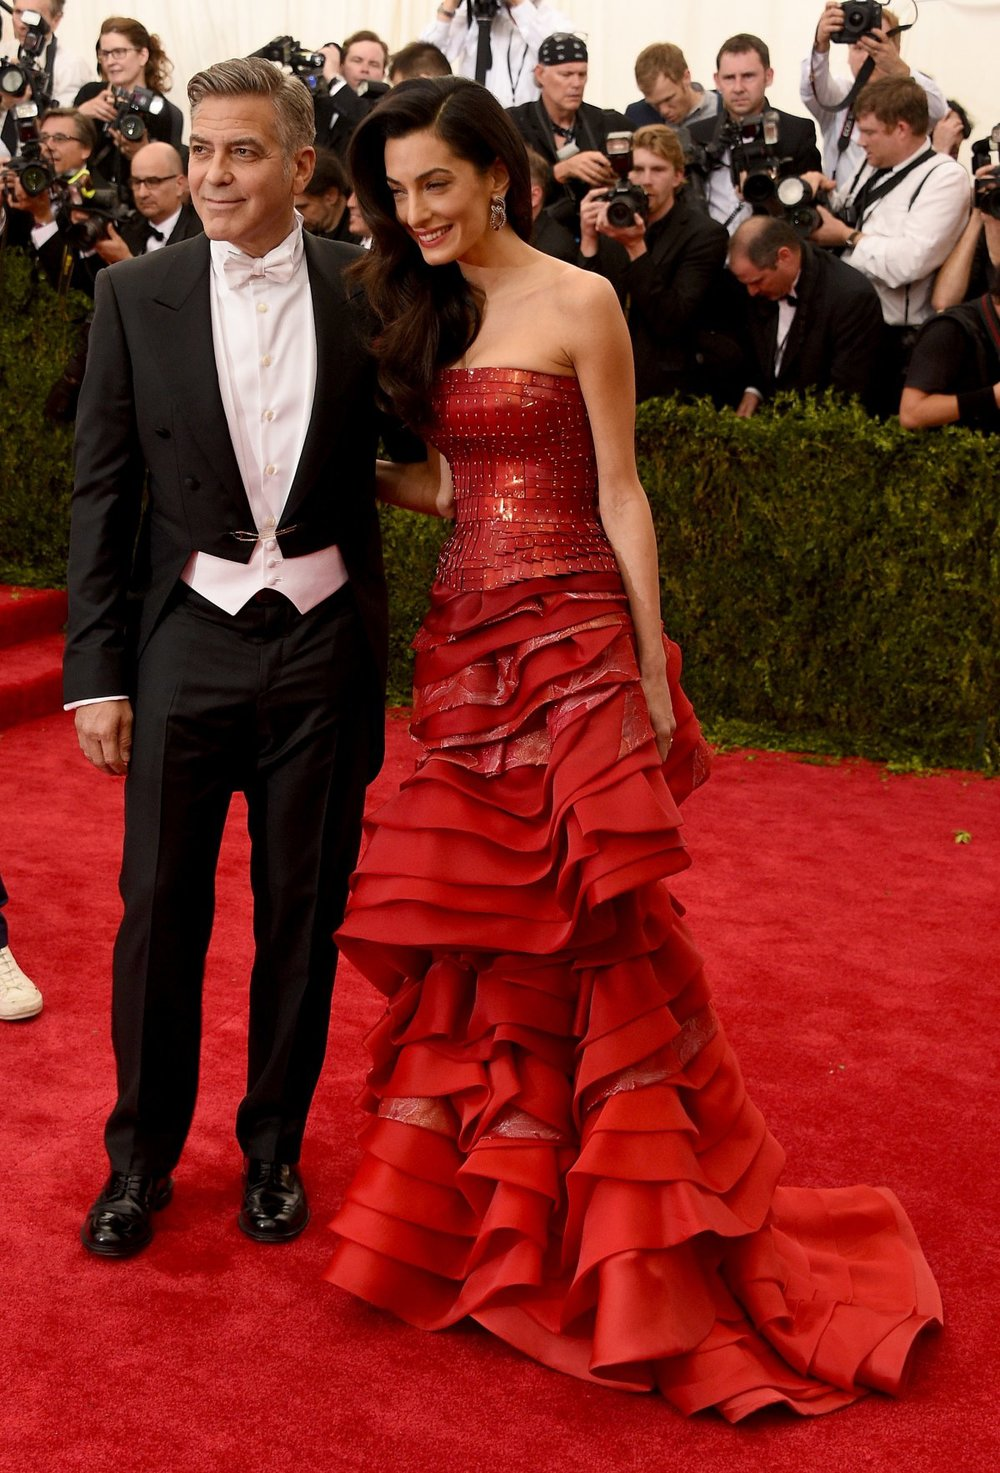 AMAL CLOONEY in JOHN GALLIANO FOR MASON MARGIELA with GEORGE CLOONEY